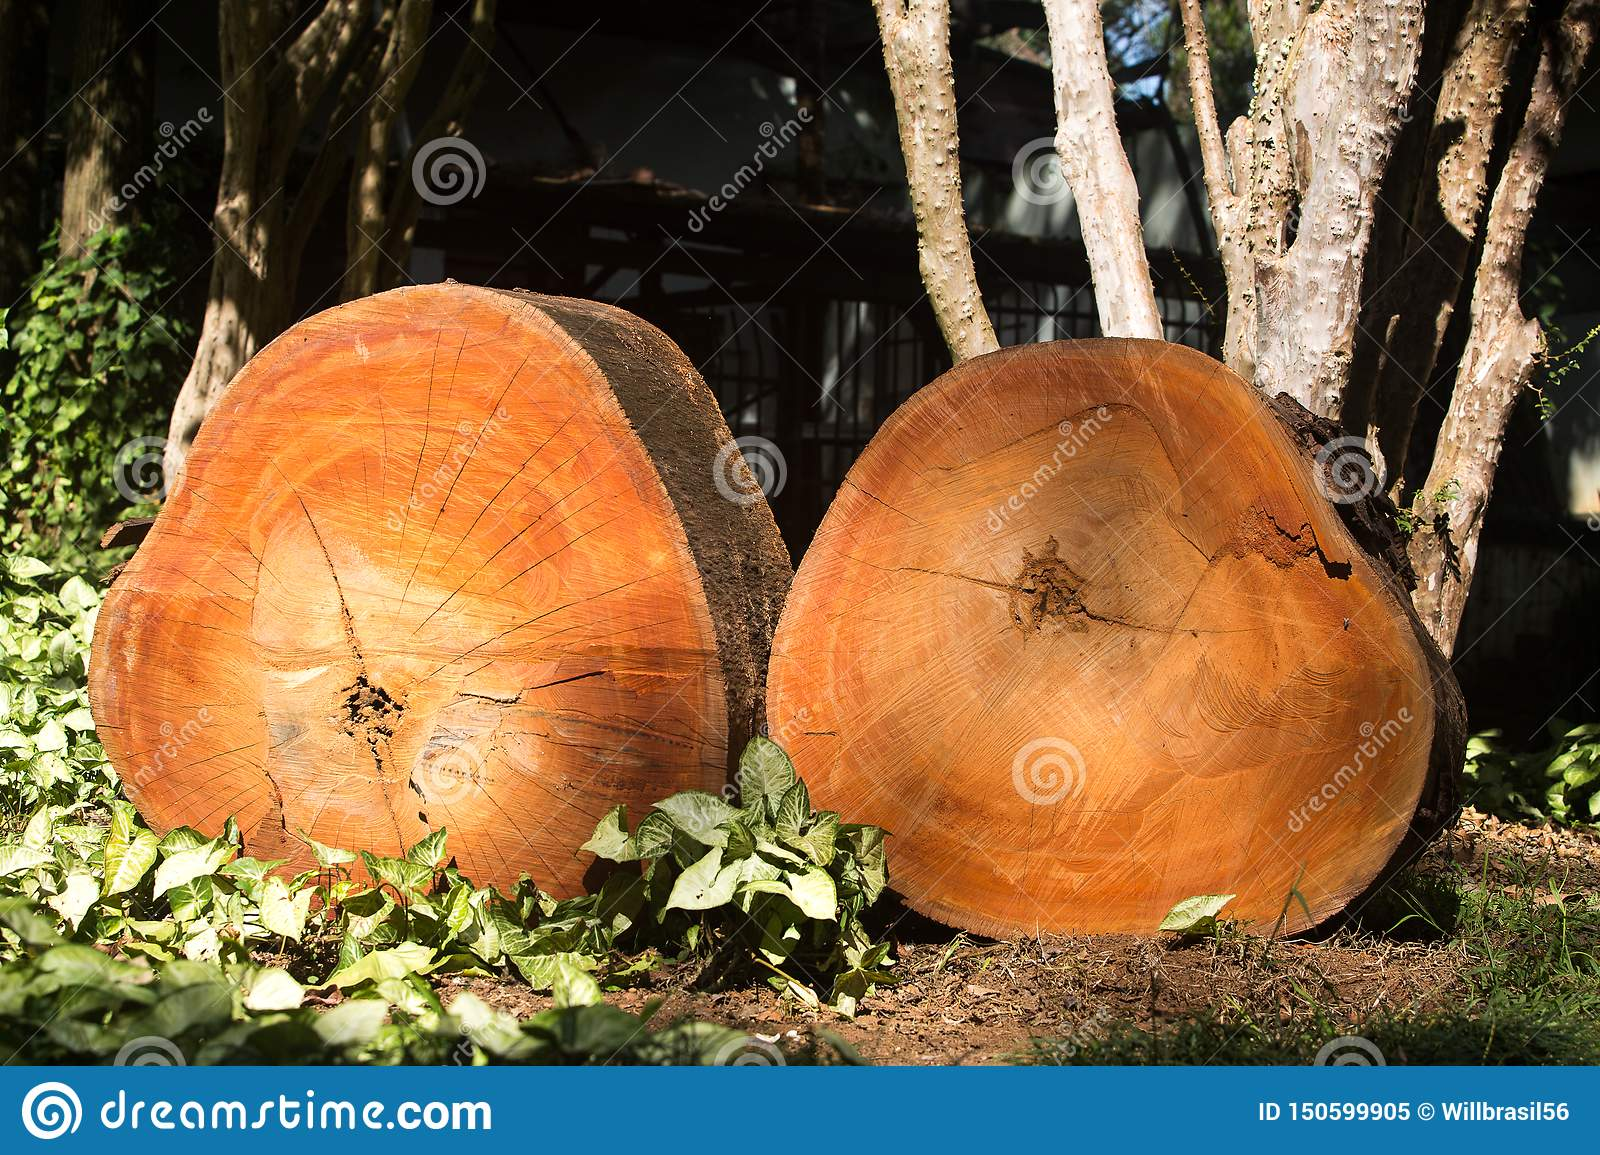 Pieces of red wood tree cut illegally